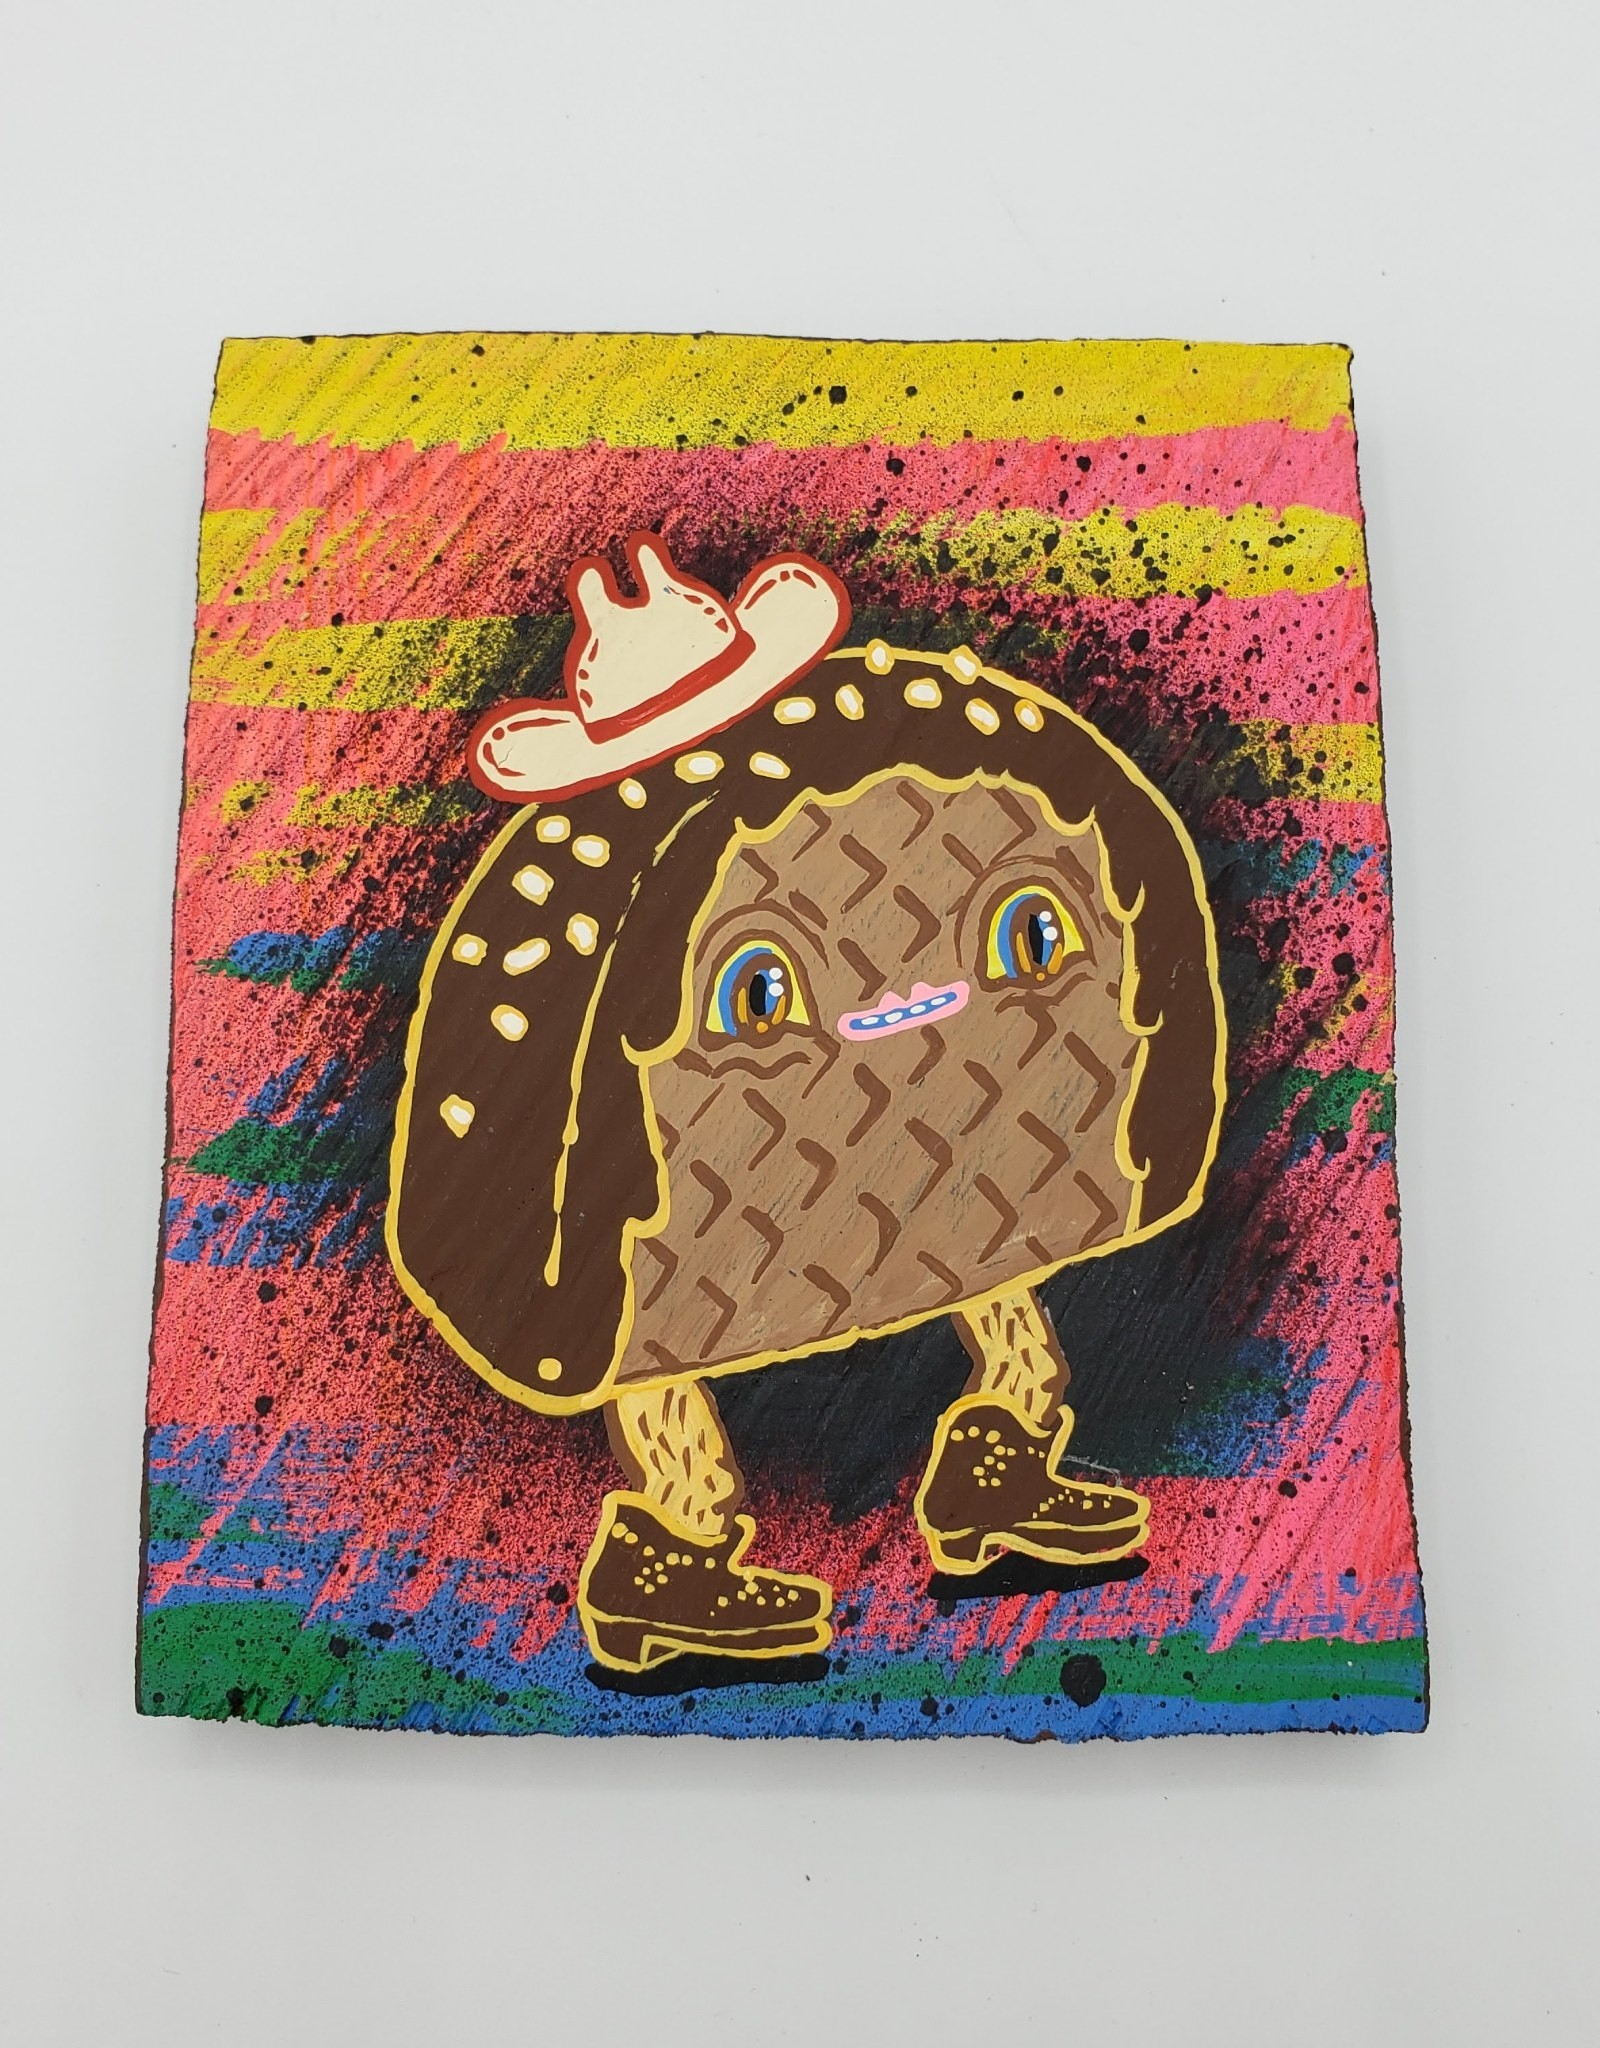 "Choco Taco Painting 4"" x 5.5"" by Tripper Dungan"